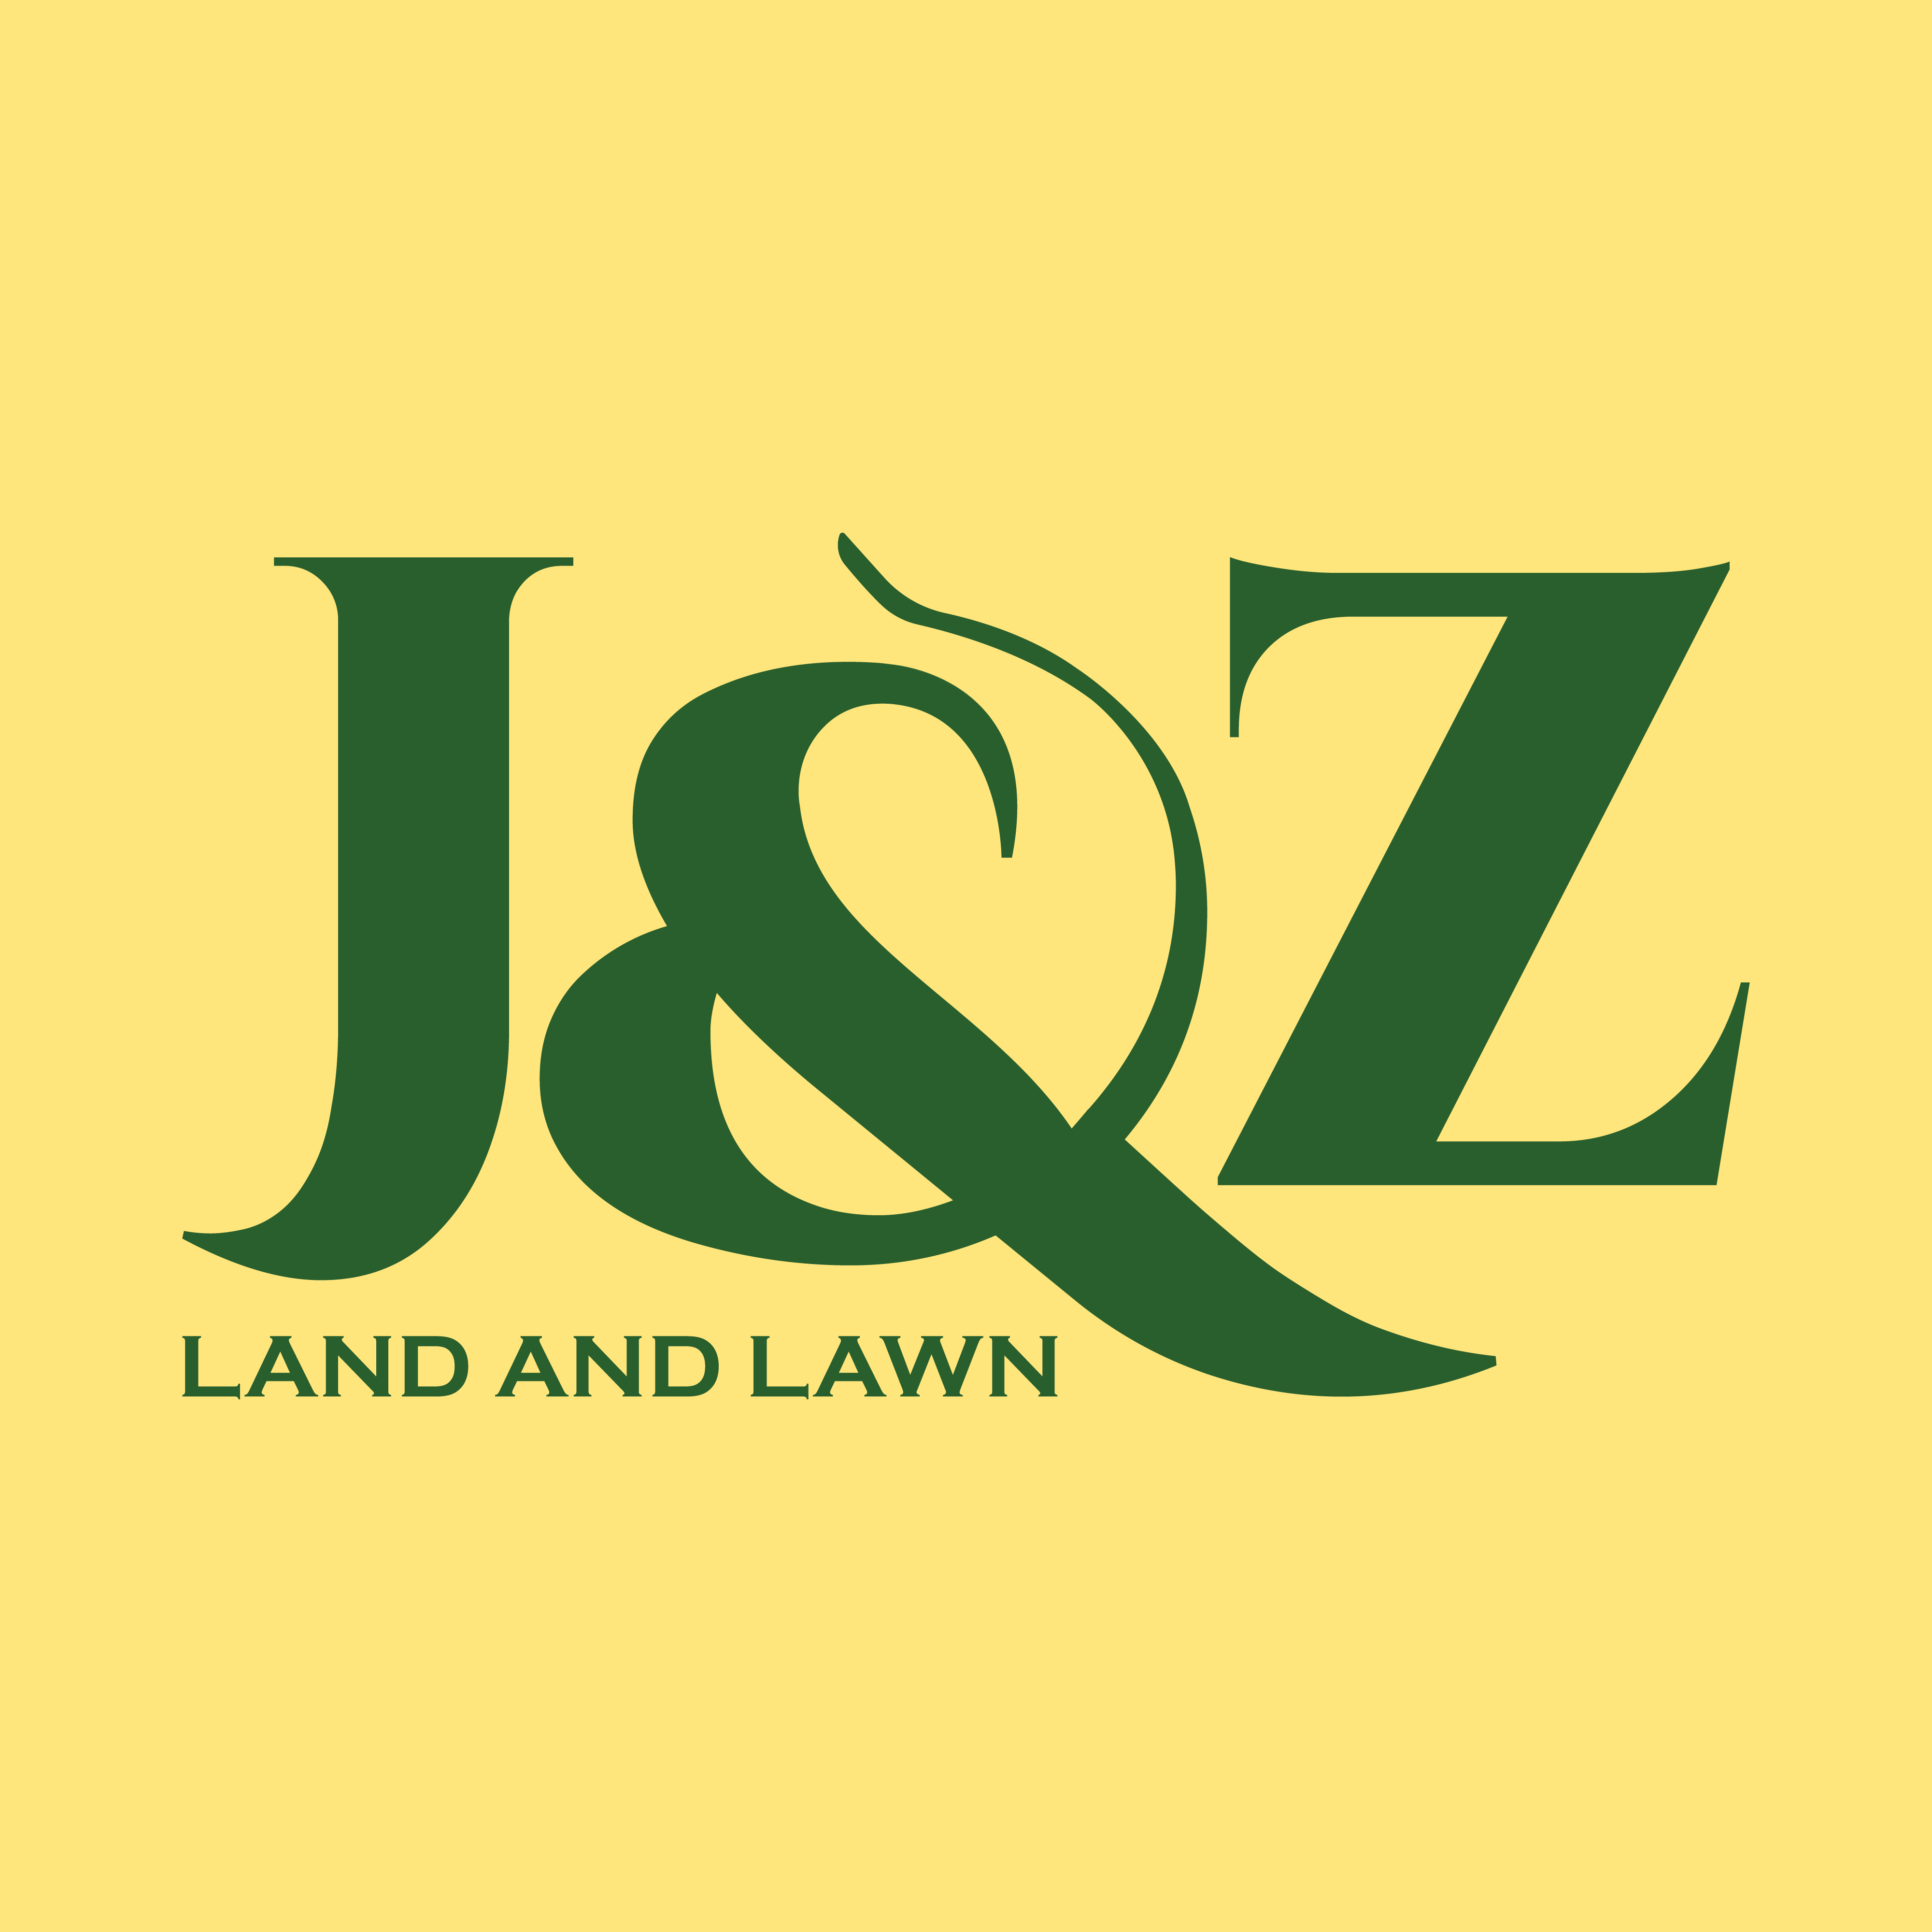 J & Z Land and Lawn